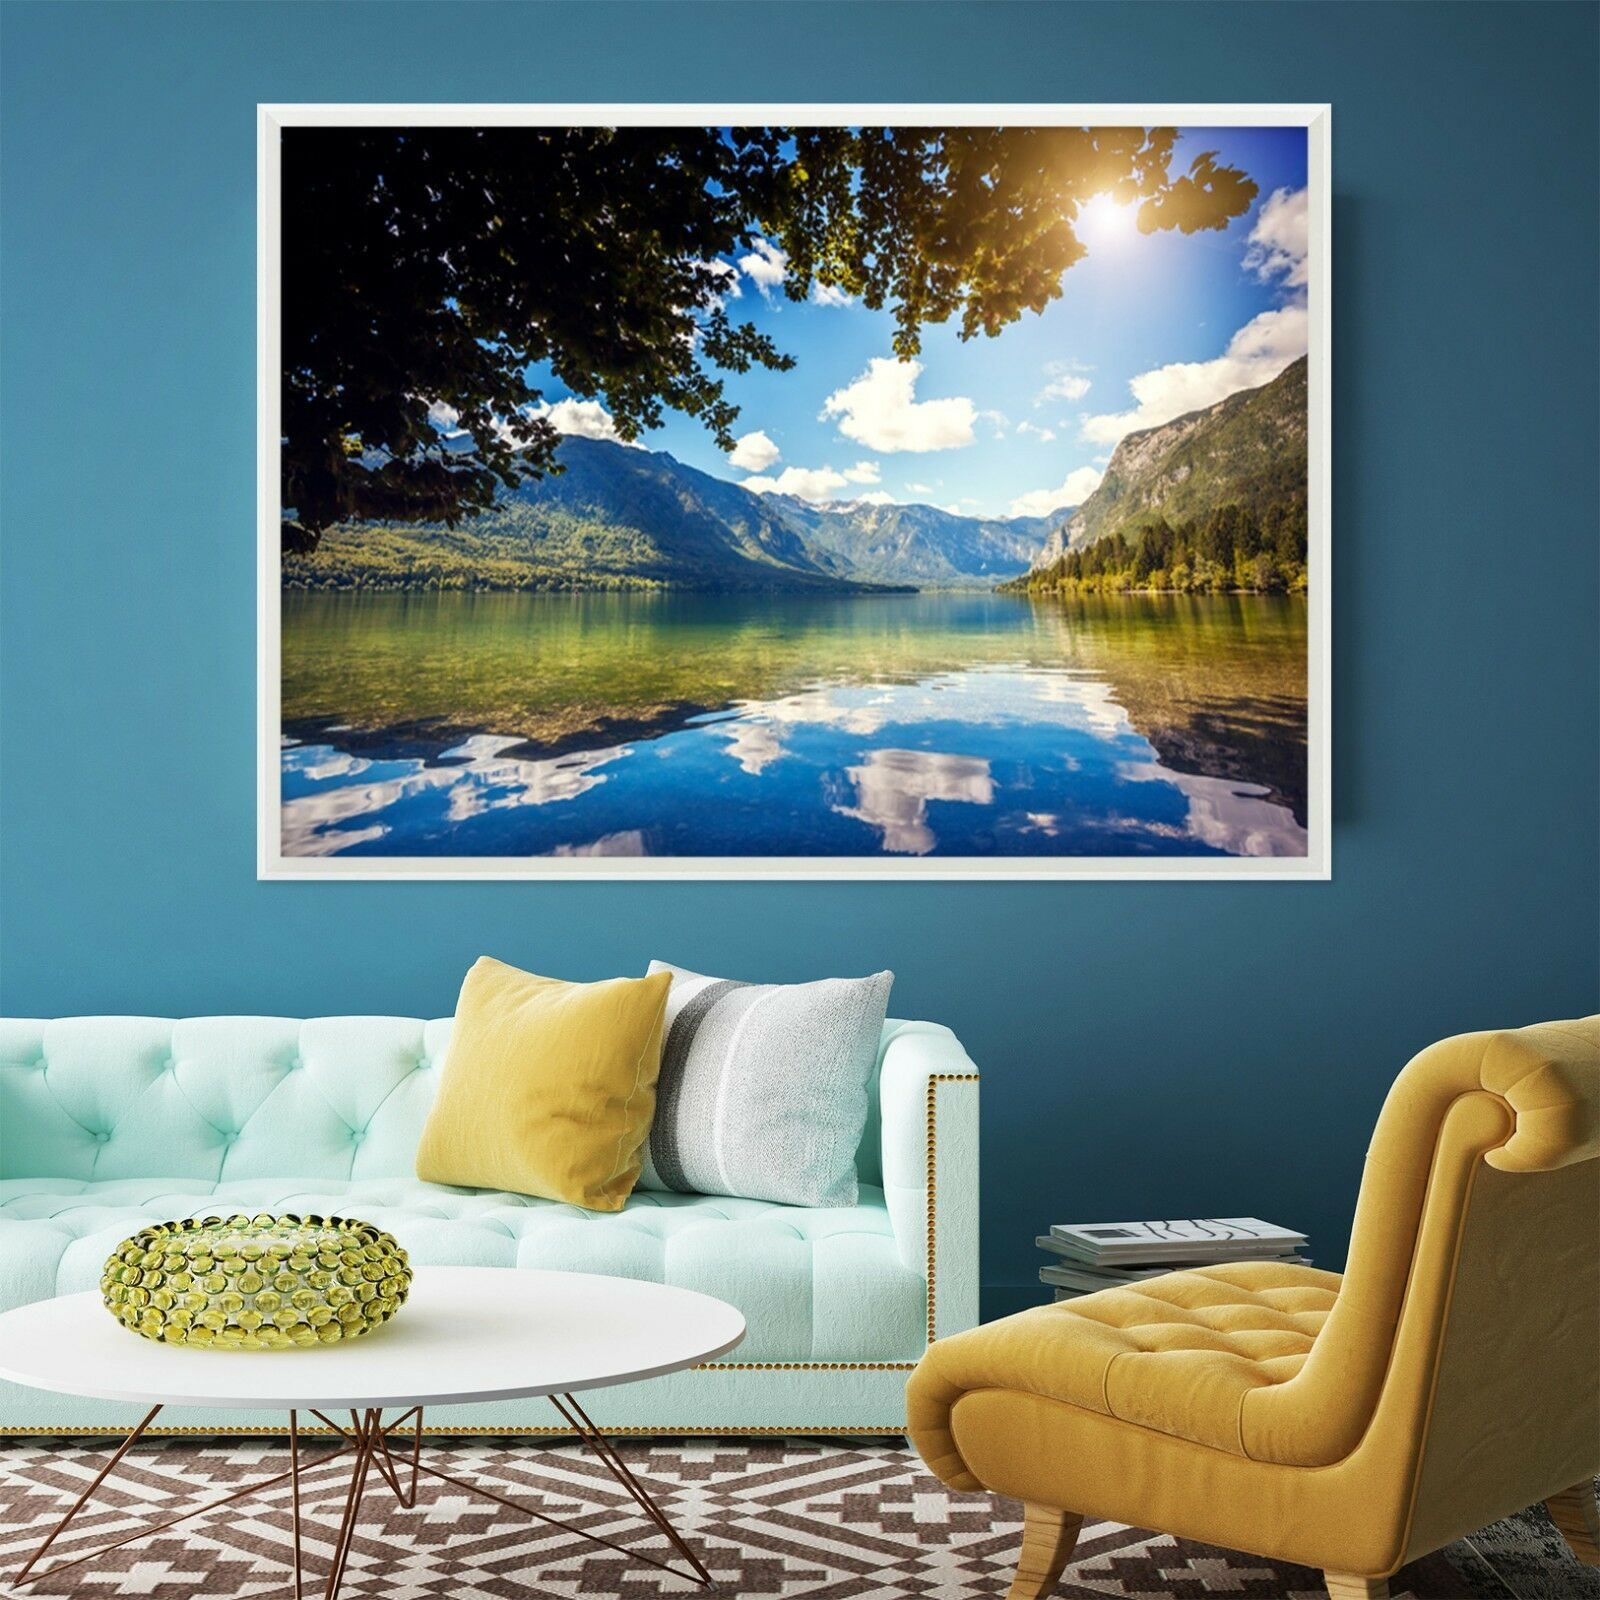 3D Clouds Mountain Sea 3 Framed Poster Home Decor Print Painting Art WALLPAPER